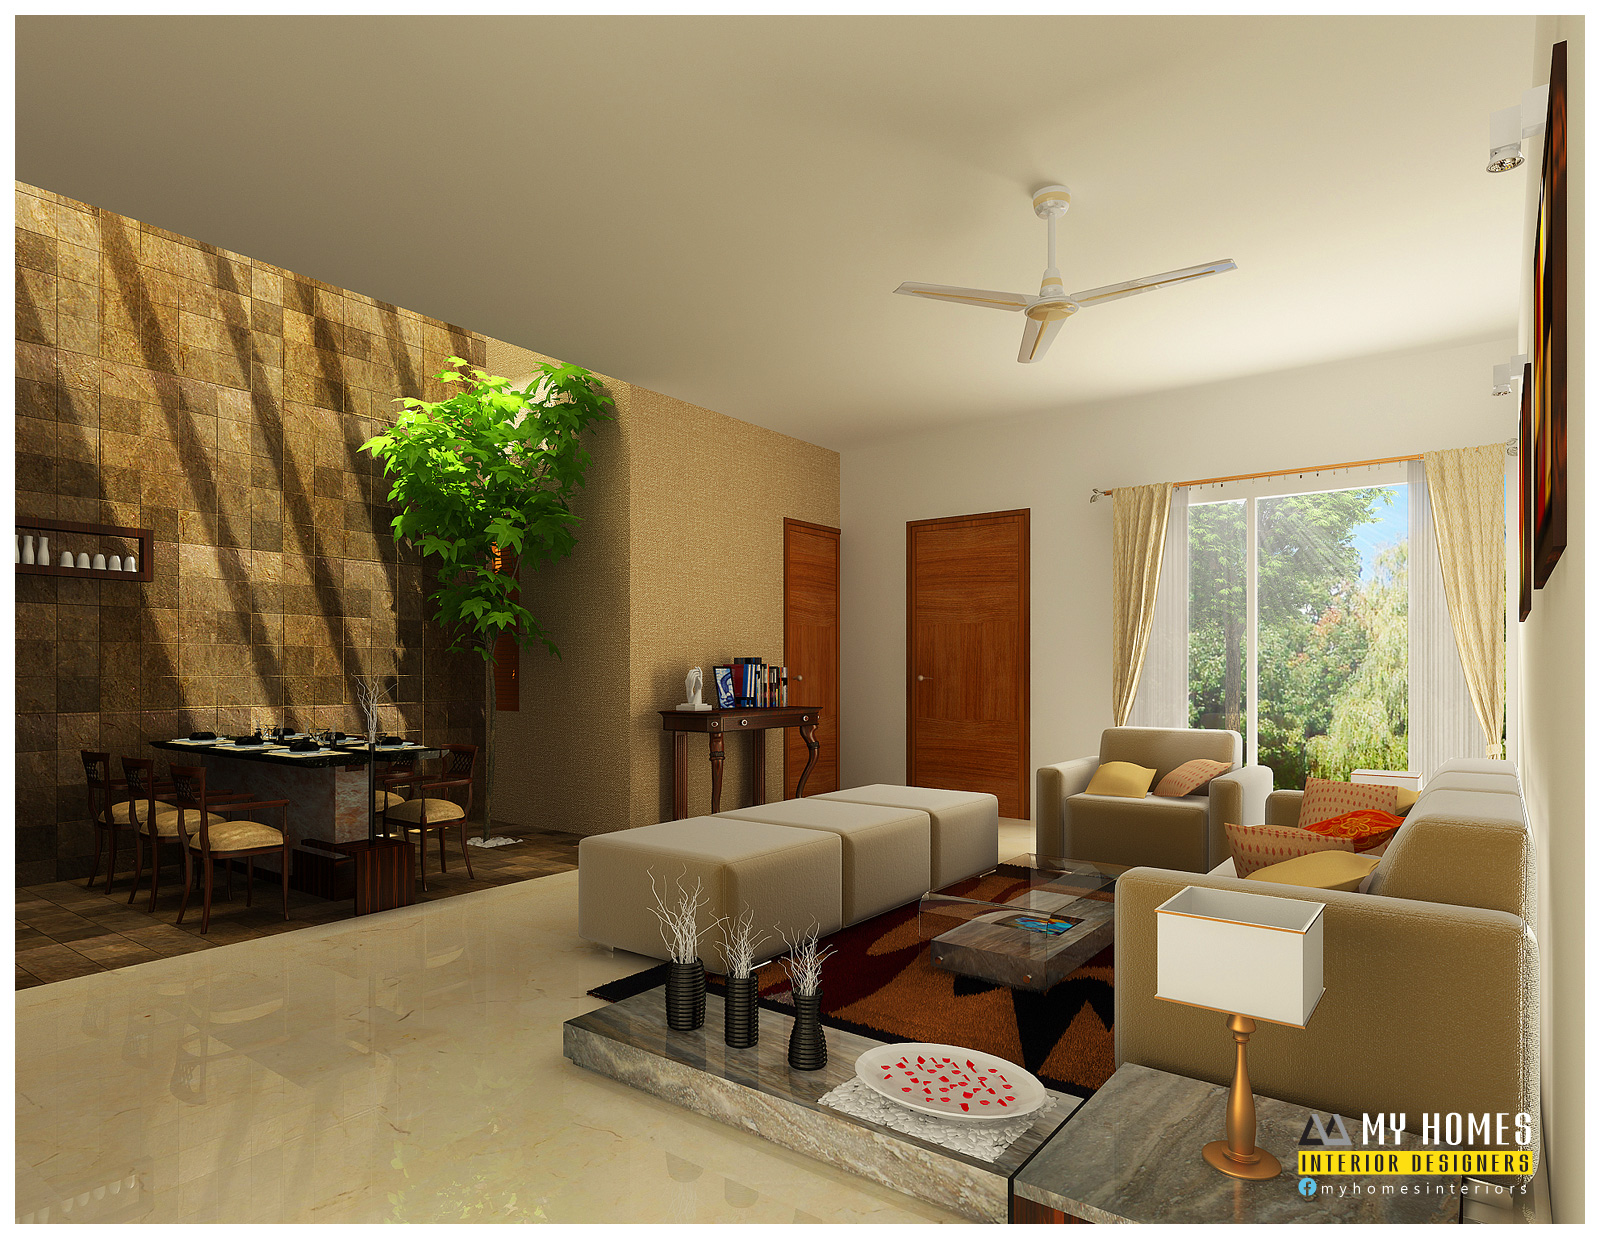 Formidable Low Cost Kerala Interior Design Ideas From Designing Company Thrissur Home Interior Design Living Room Ideas Home Living Room Ideas Kerala Home Design Interior Ideas interior Home Interiors Living Room Ideas